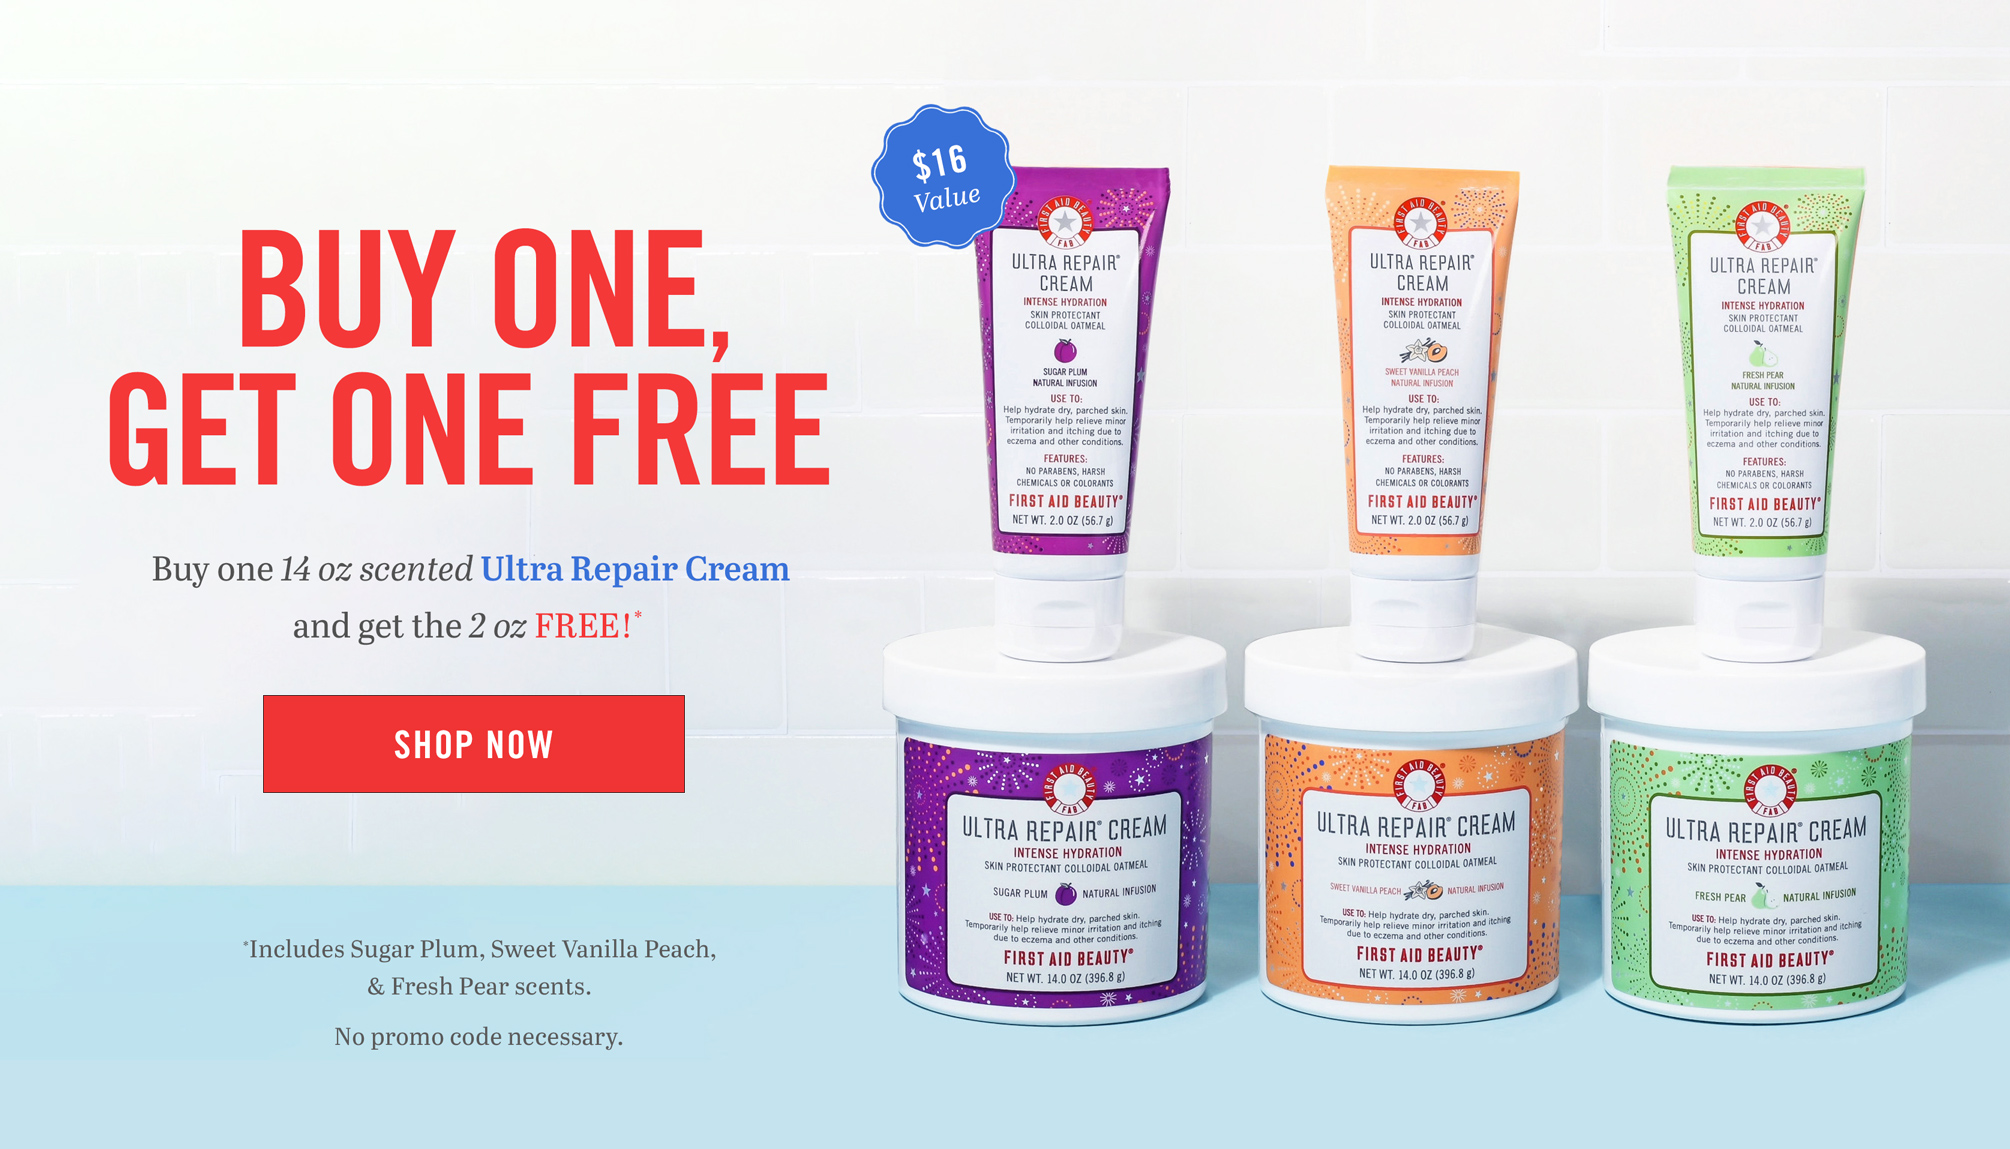 Free 2 oz Ultra Repair Cream with 14 oz purchase. Select scents only!